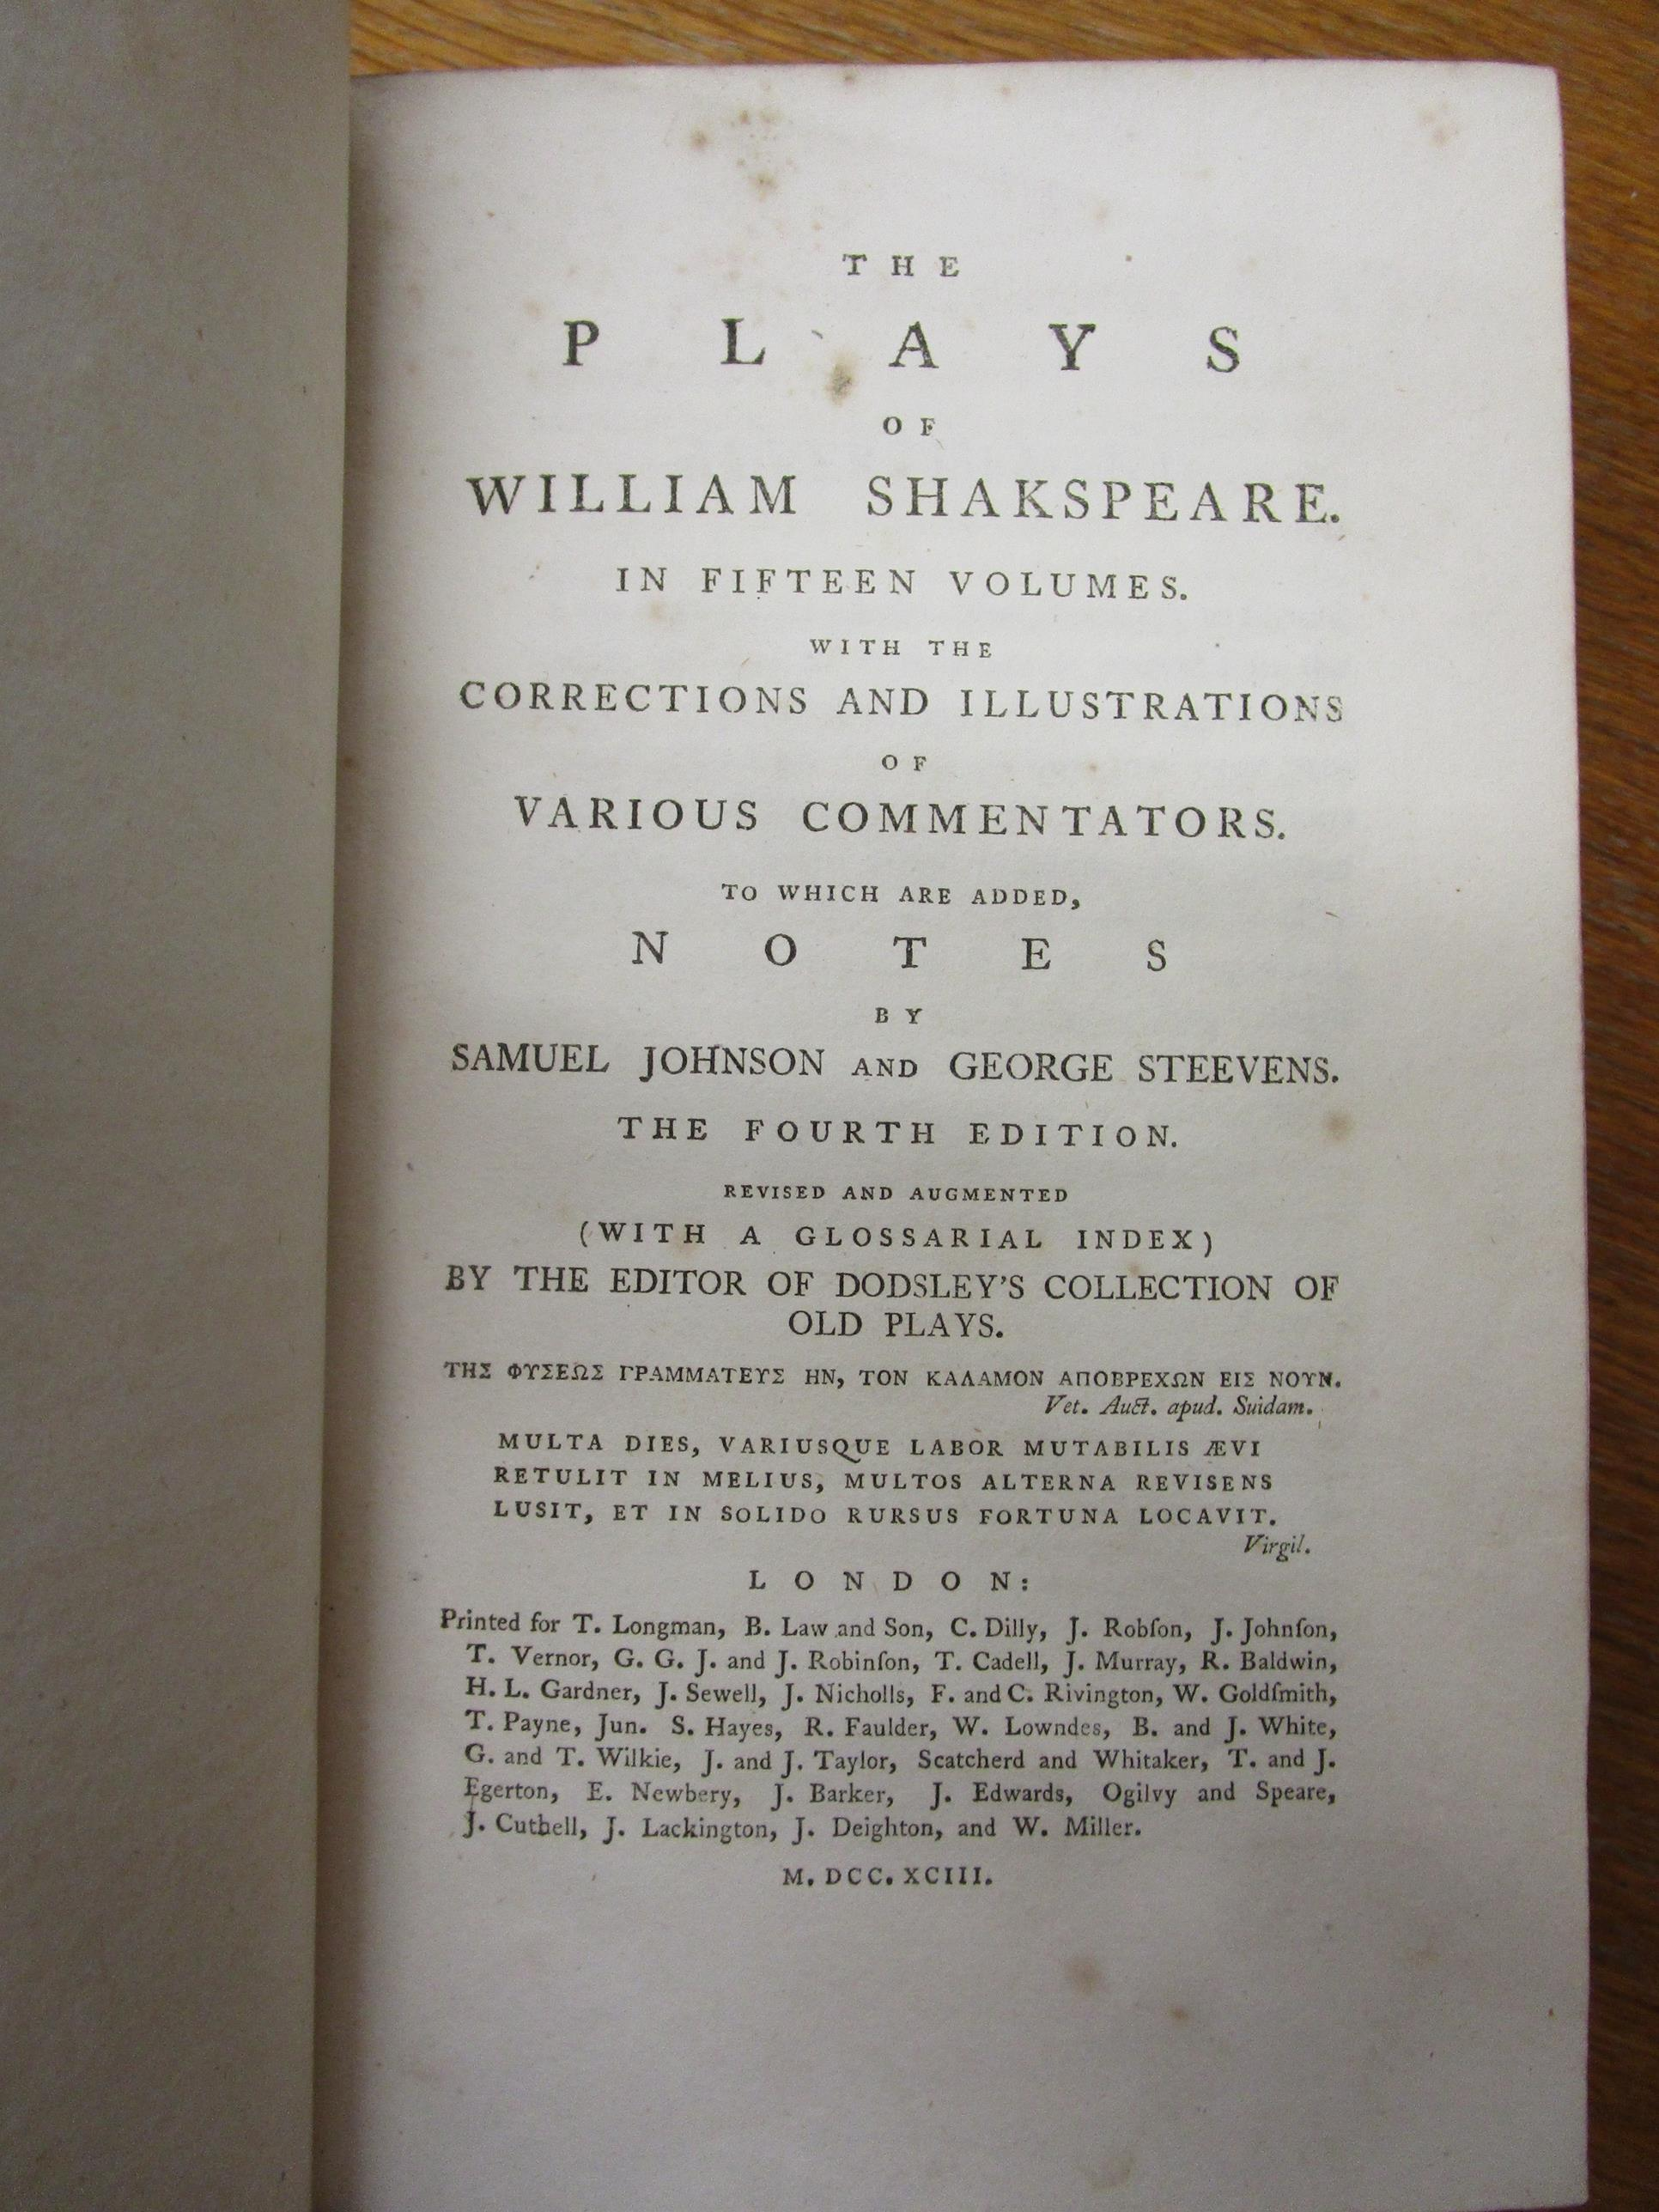 Lot 211 - Complete works of Shakespeare